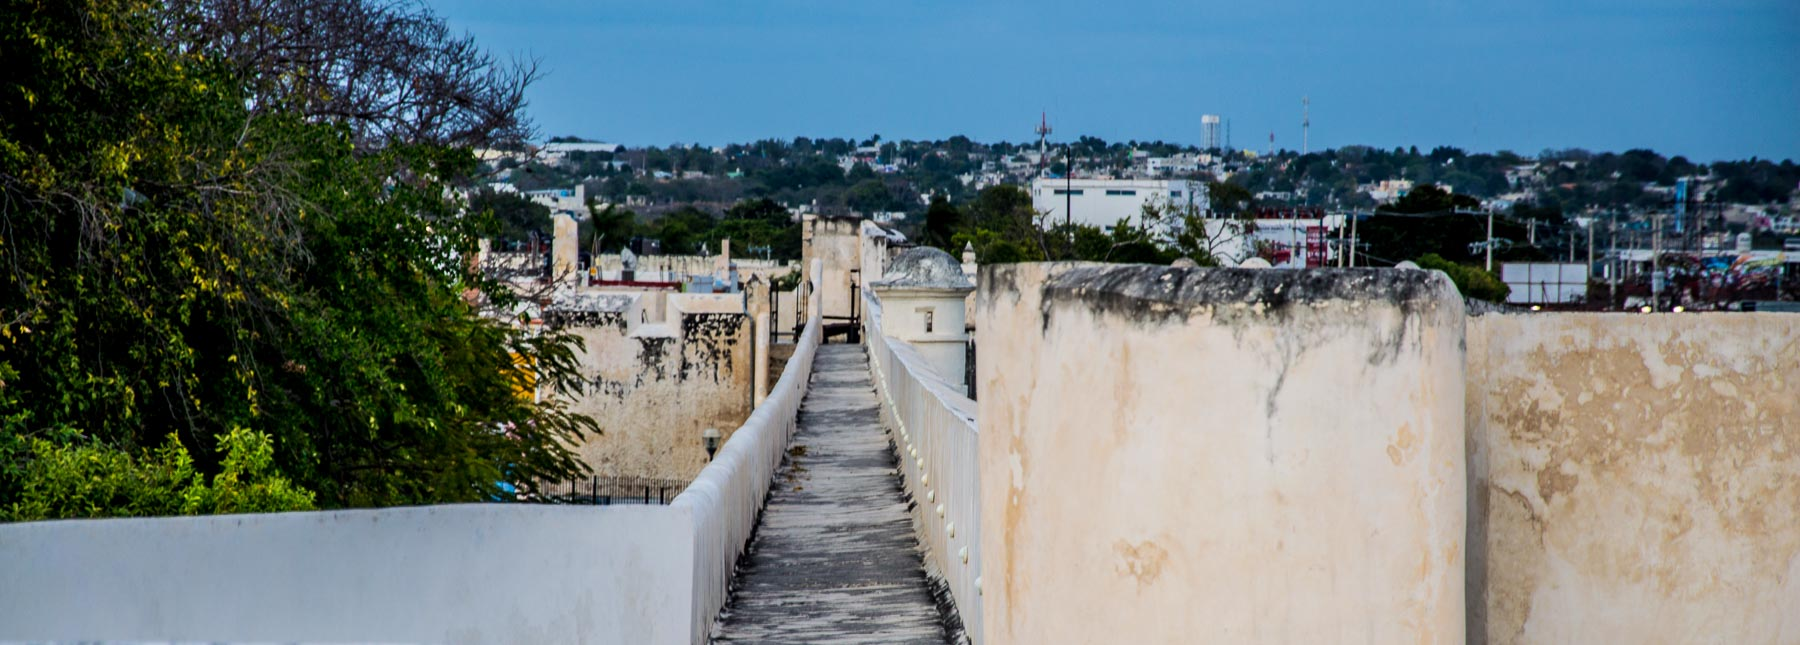 A view of Campeche's walls.